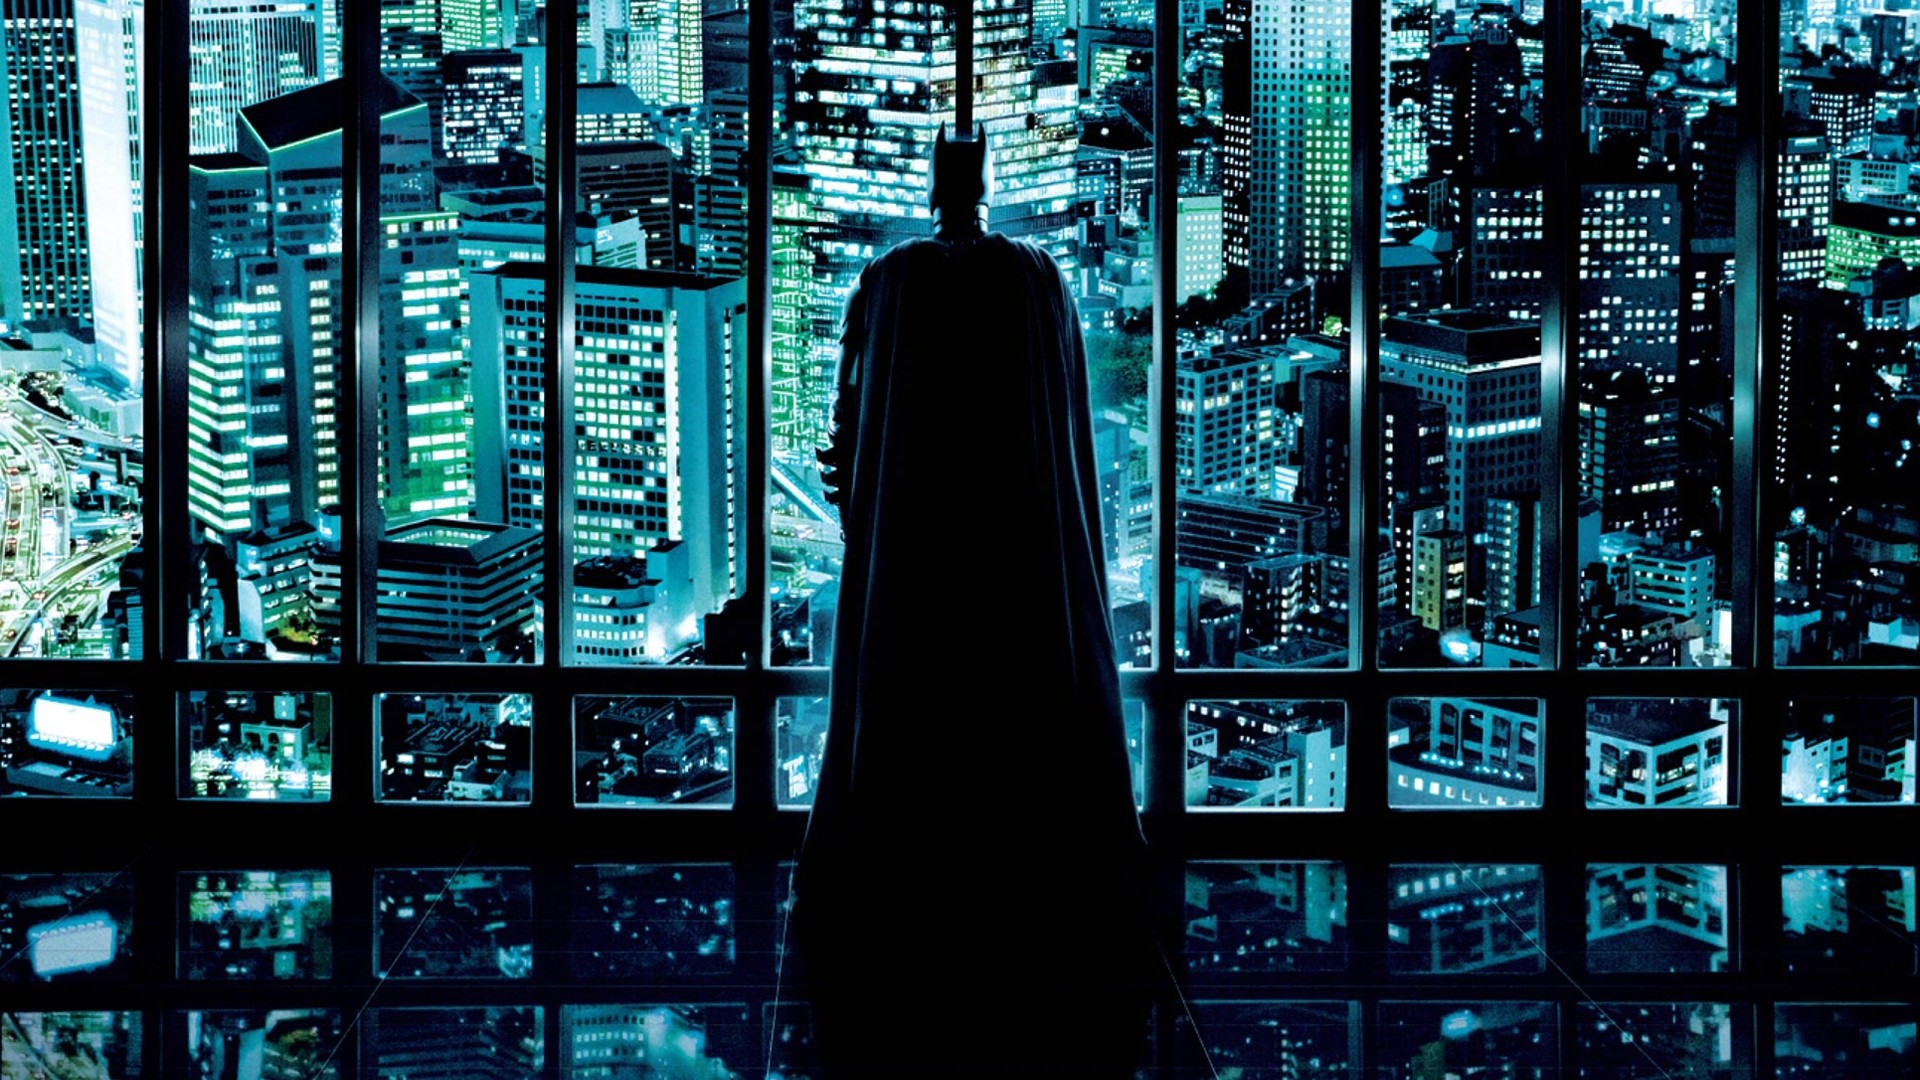 Batman assalto ao arkham 2014 bluray 1080p dublado d4v1 - 1 8